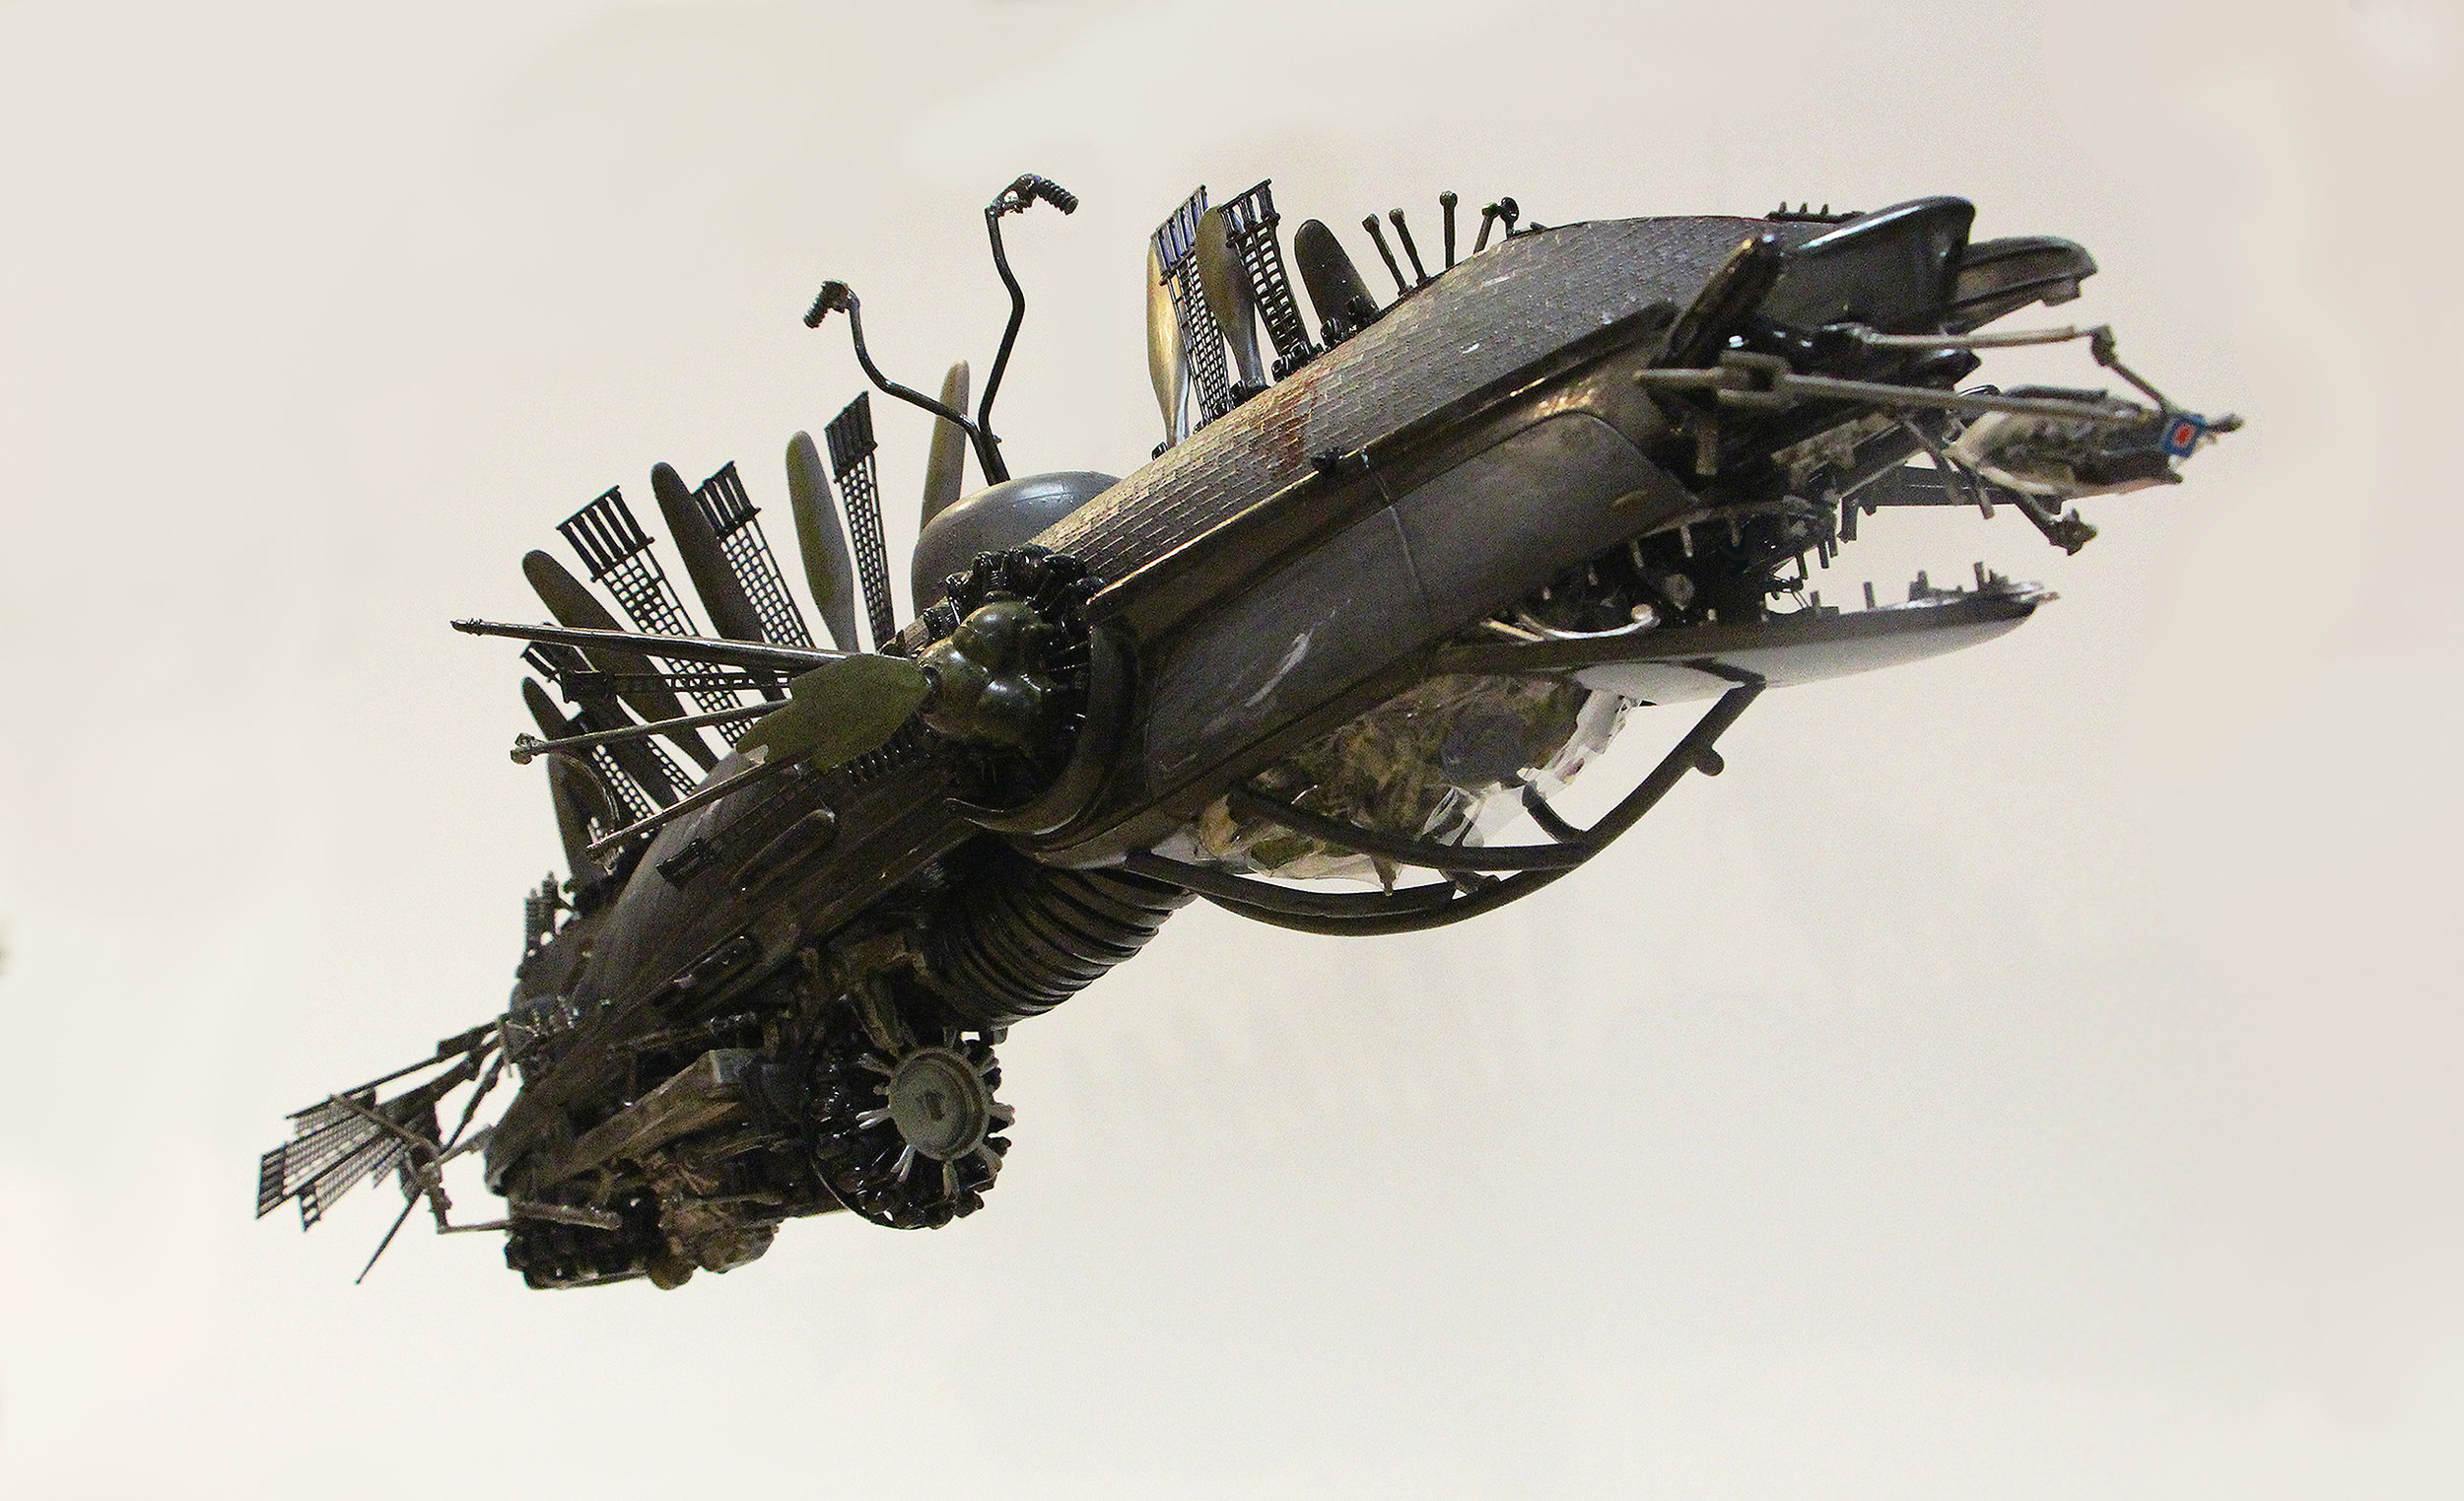 Full Machine Made of Plane, Ship and Car Components